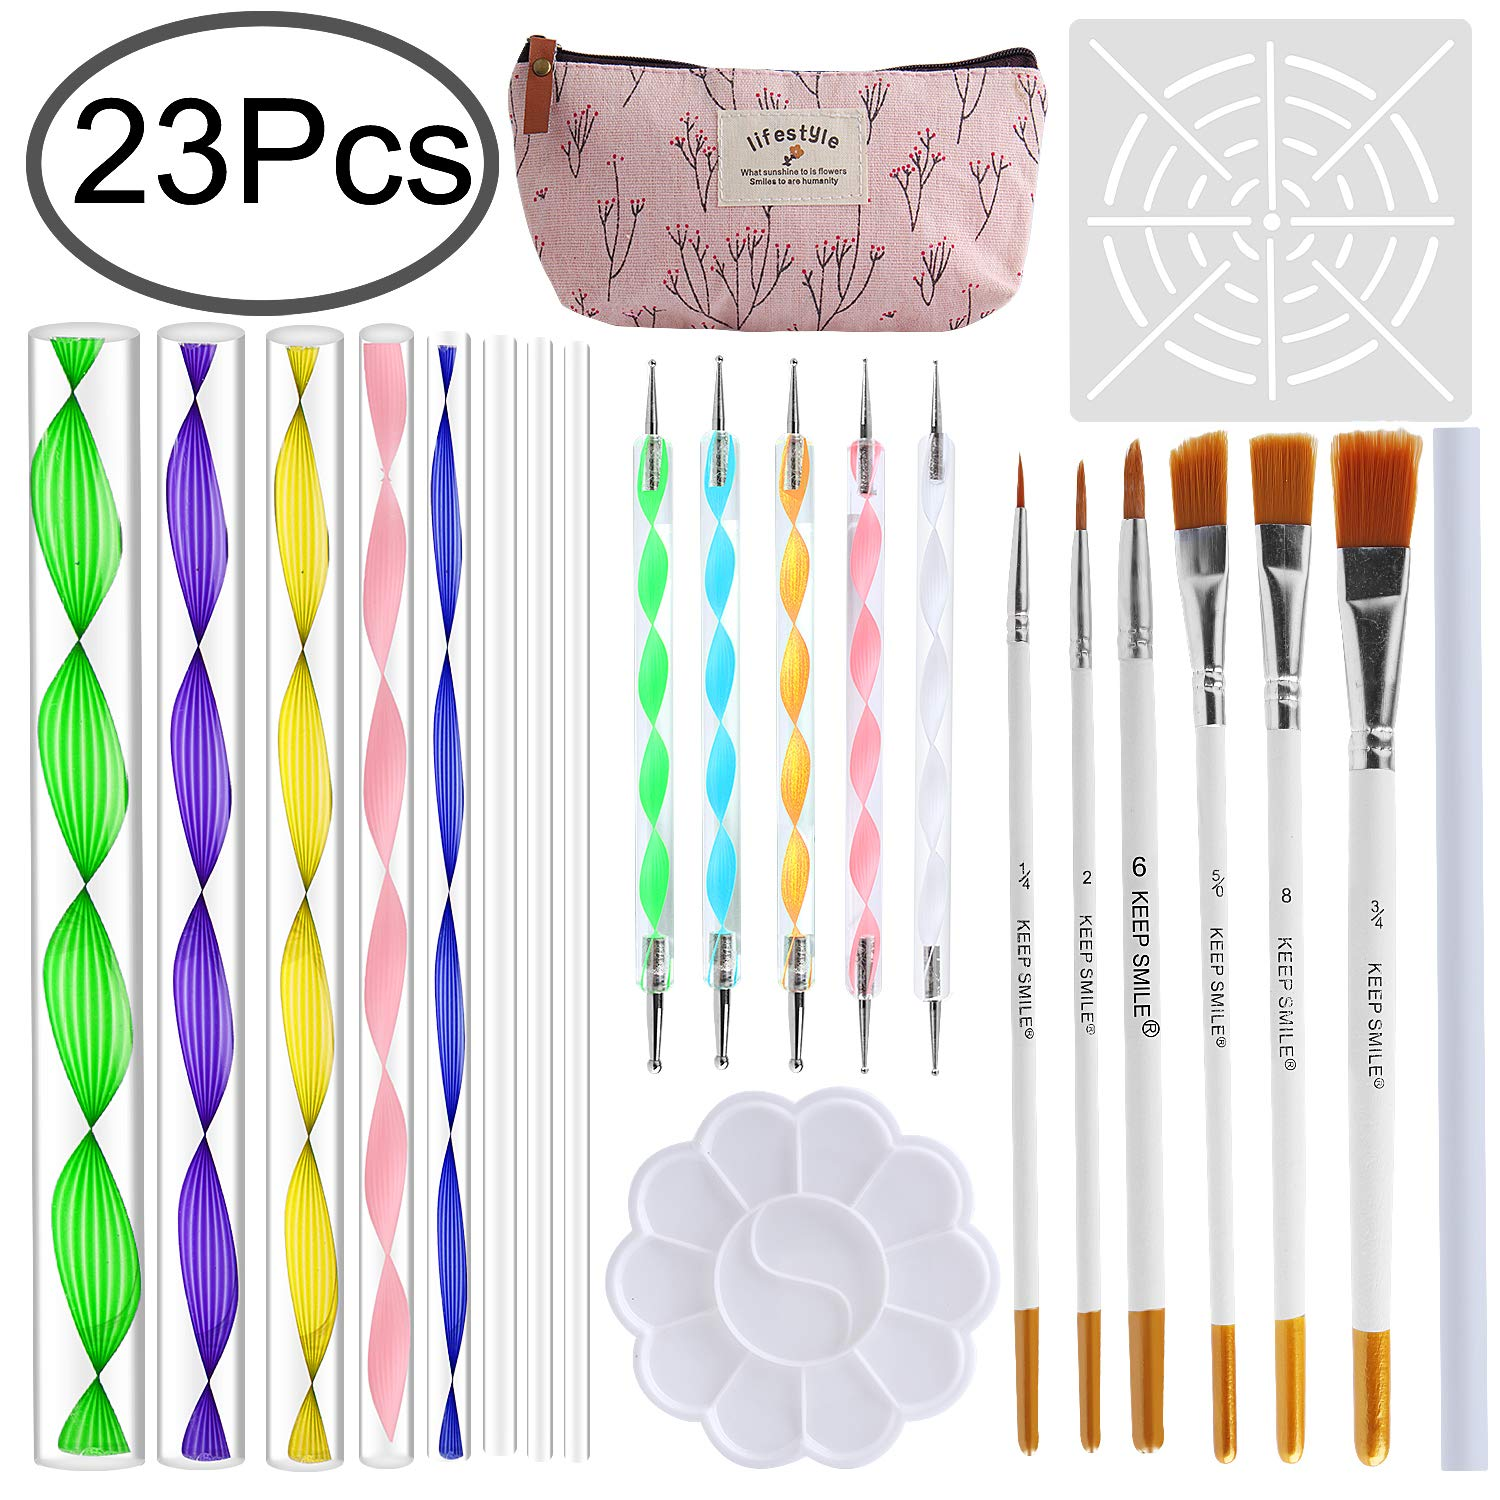 Outee Mandala Dotting Tools Mandala Painting Kit 23 Pcs Rock Dotting Tools Nail Art Dotting Rock Painting Tools Mandala Rock Painting for Drawing & Drafting, Crafts